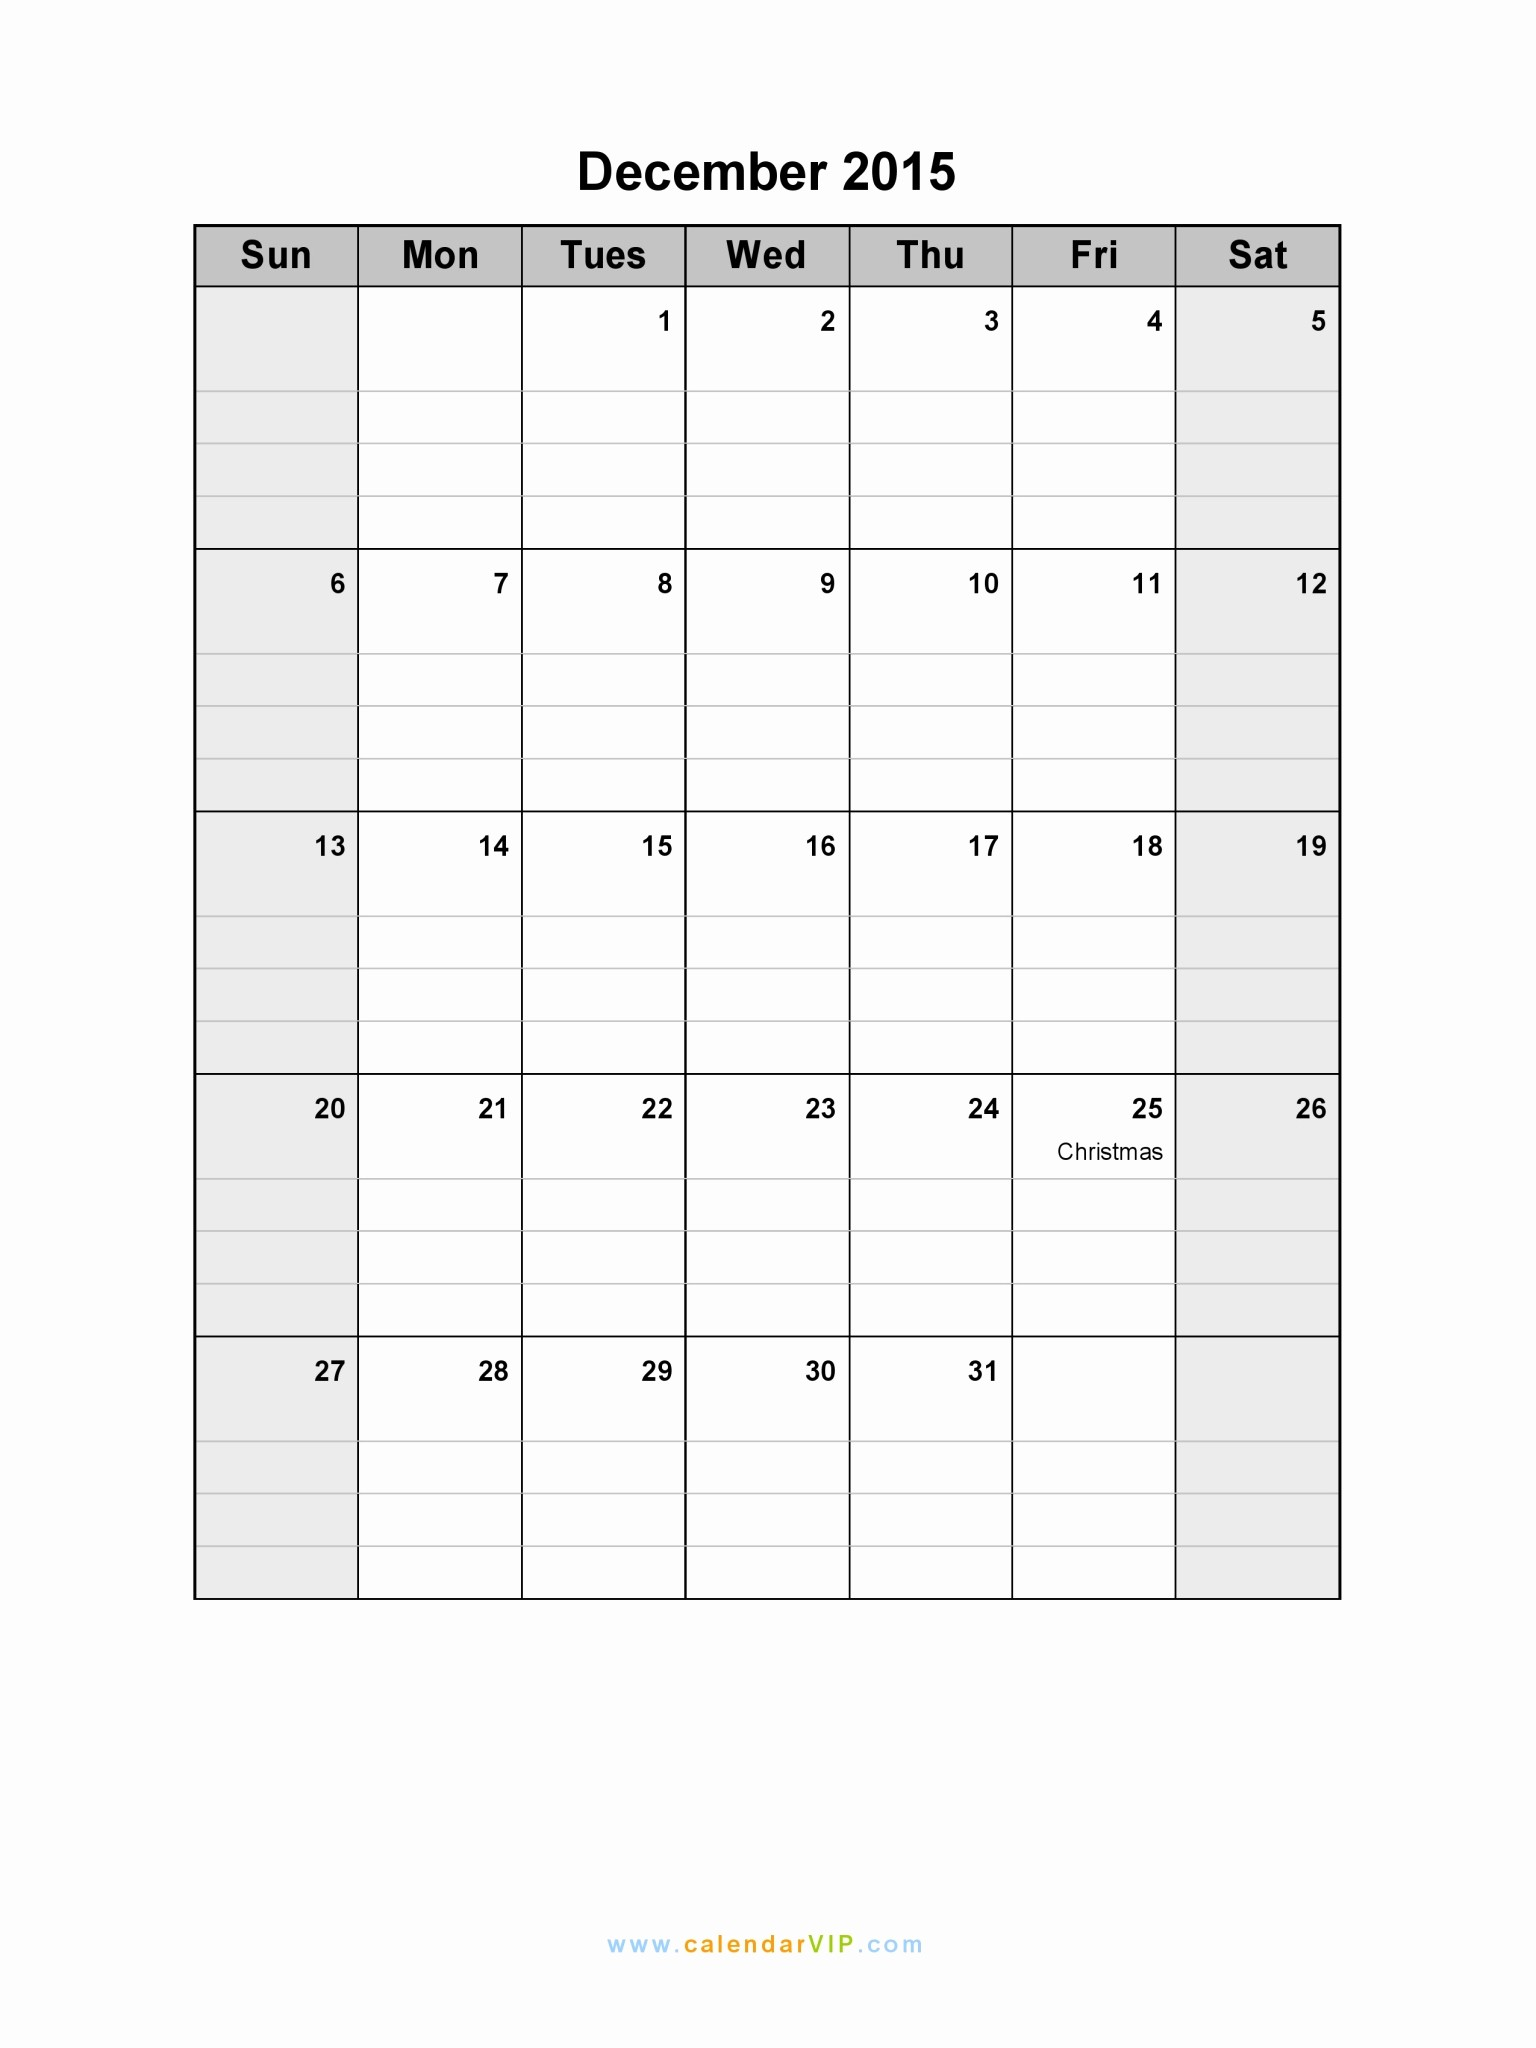 December 2015 Calendar Word Document Luxury December 2015 Calendar Blank Printable Calendar Template